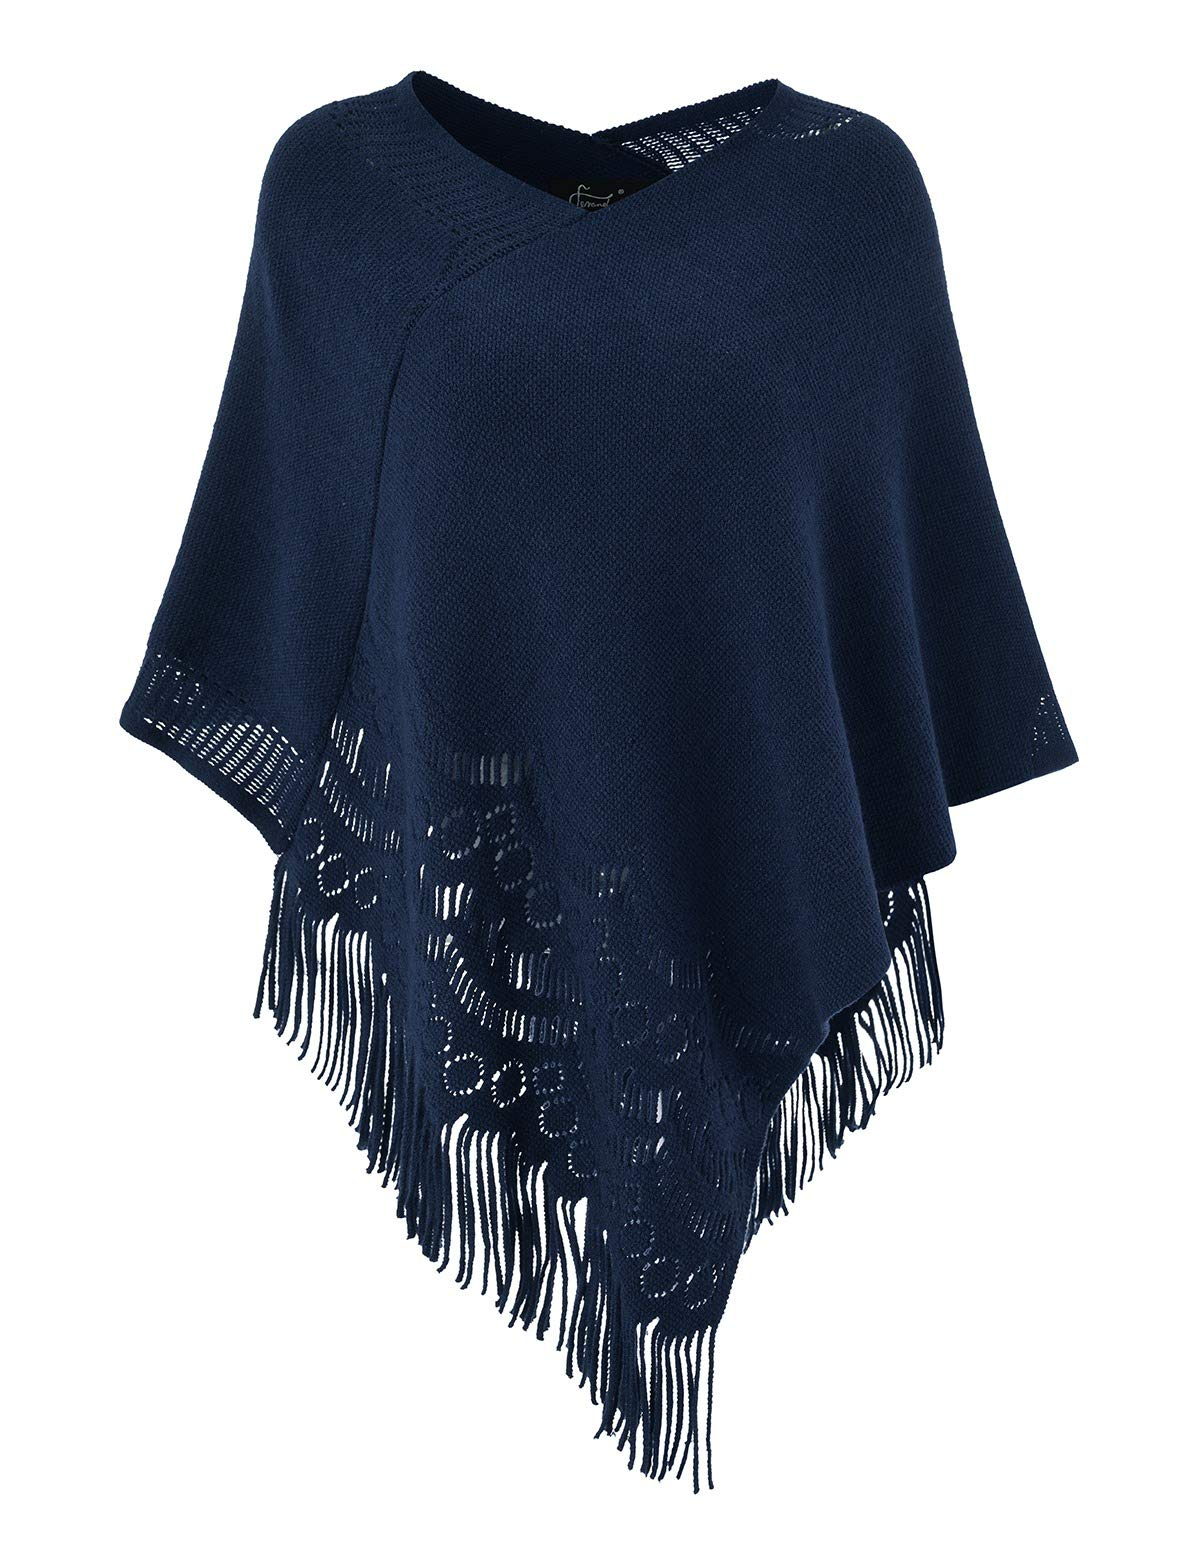 Ferand Women's Crochet Soft Fringe Poncho Pullover Sweater in Multi-Way Neck Style, One Size, Navy Blue